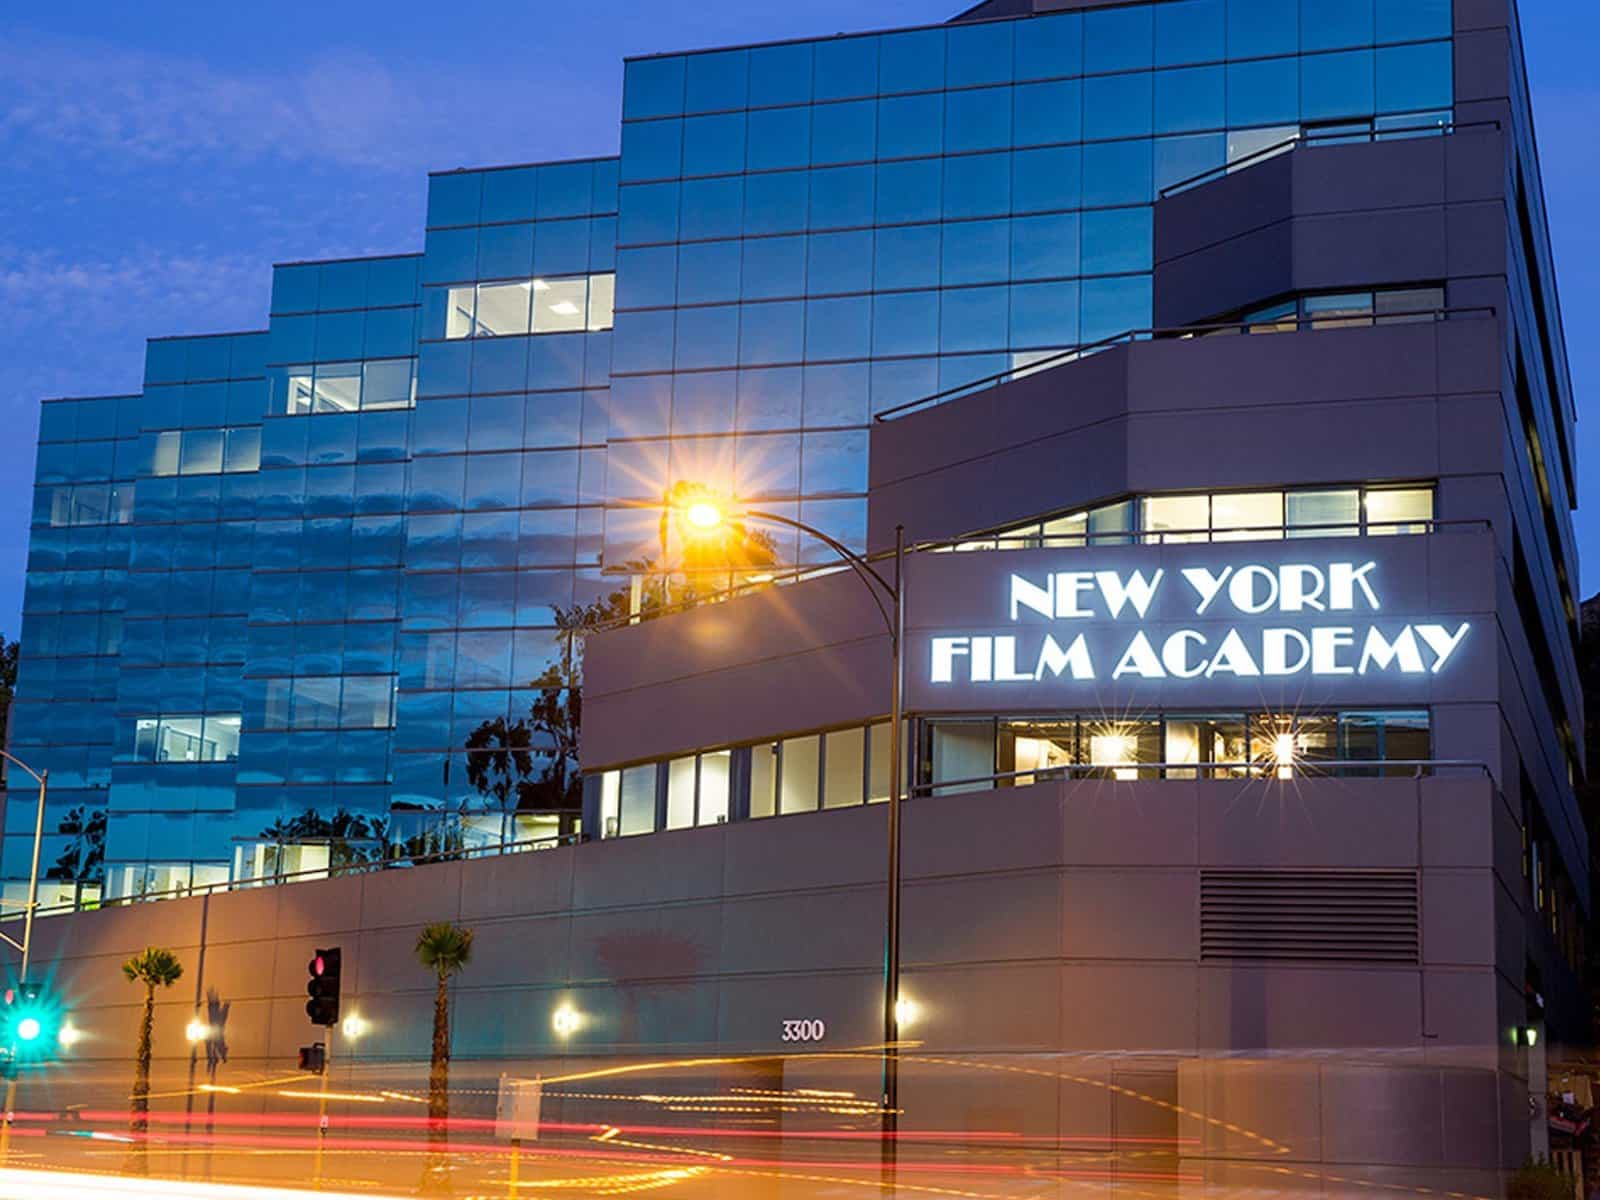 Best Film Schools for Video Production - New York Film Academy - NYFA